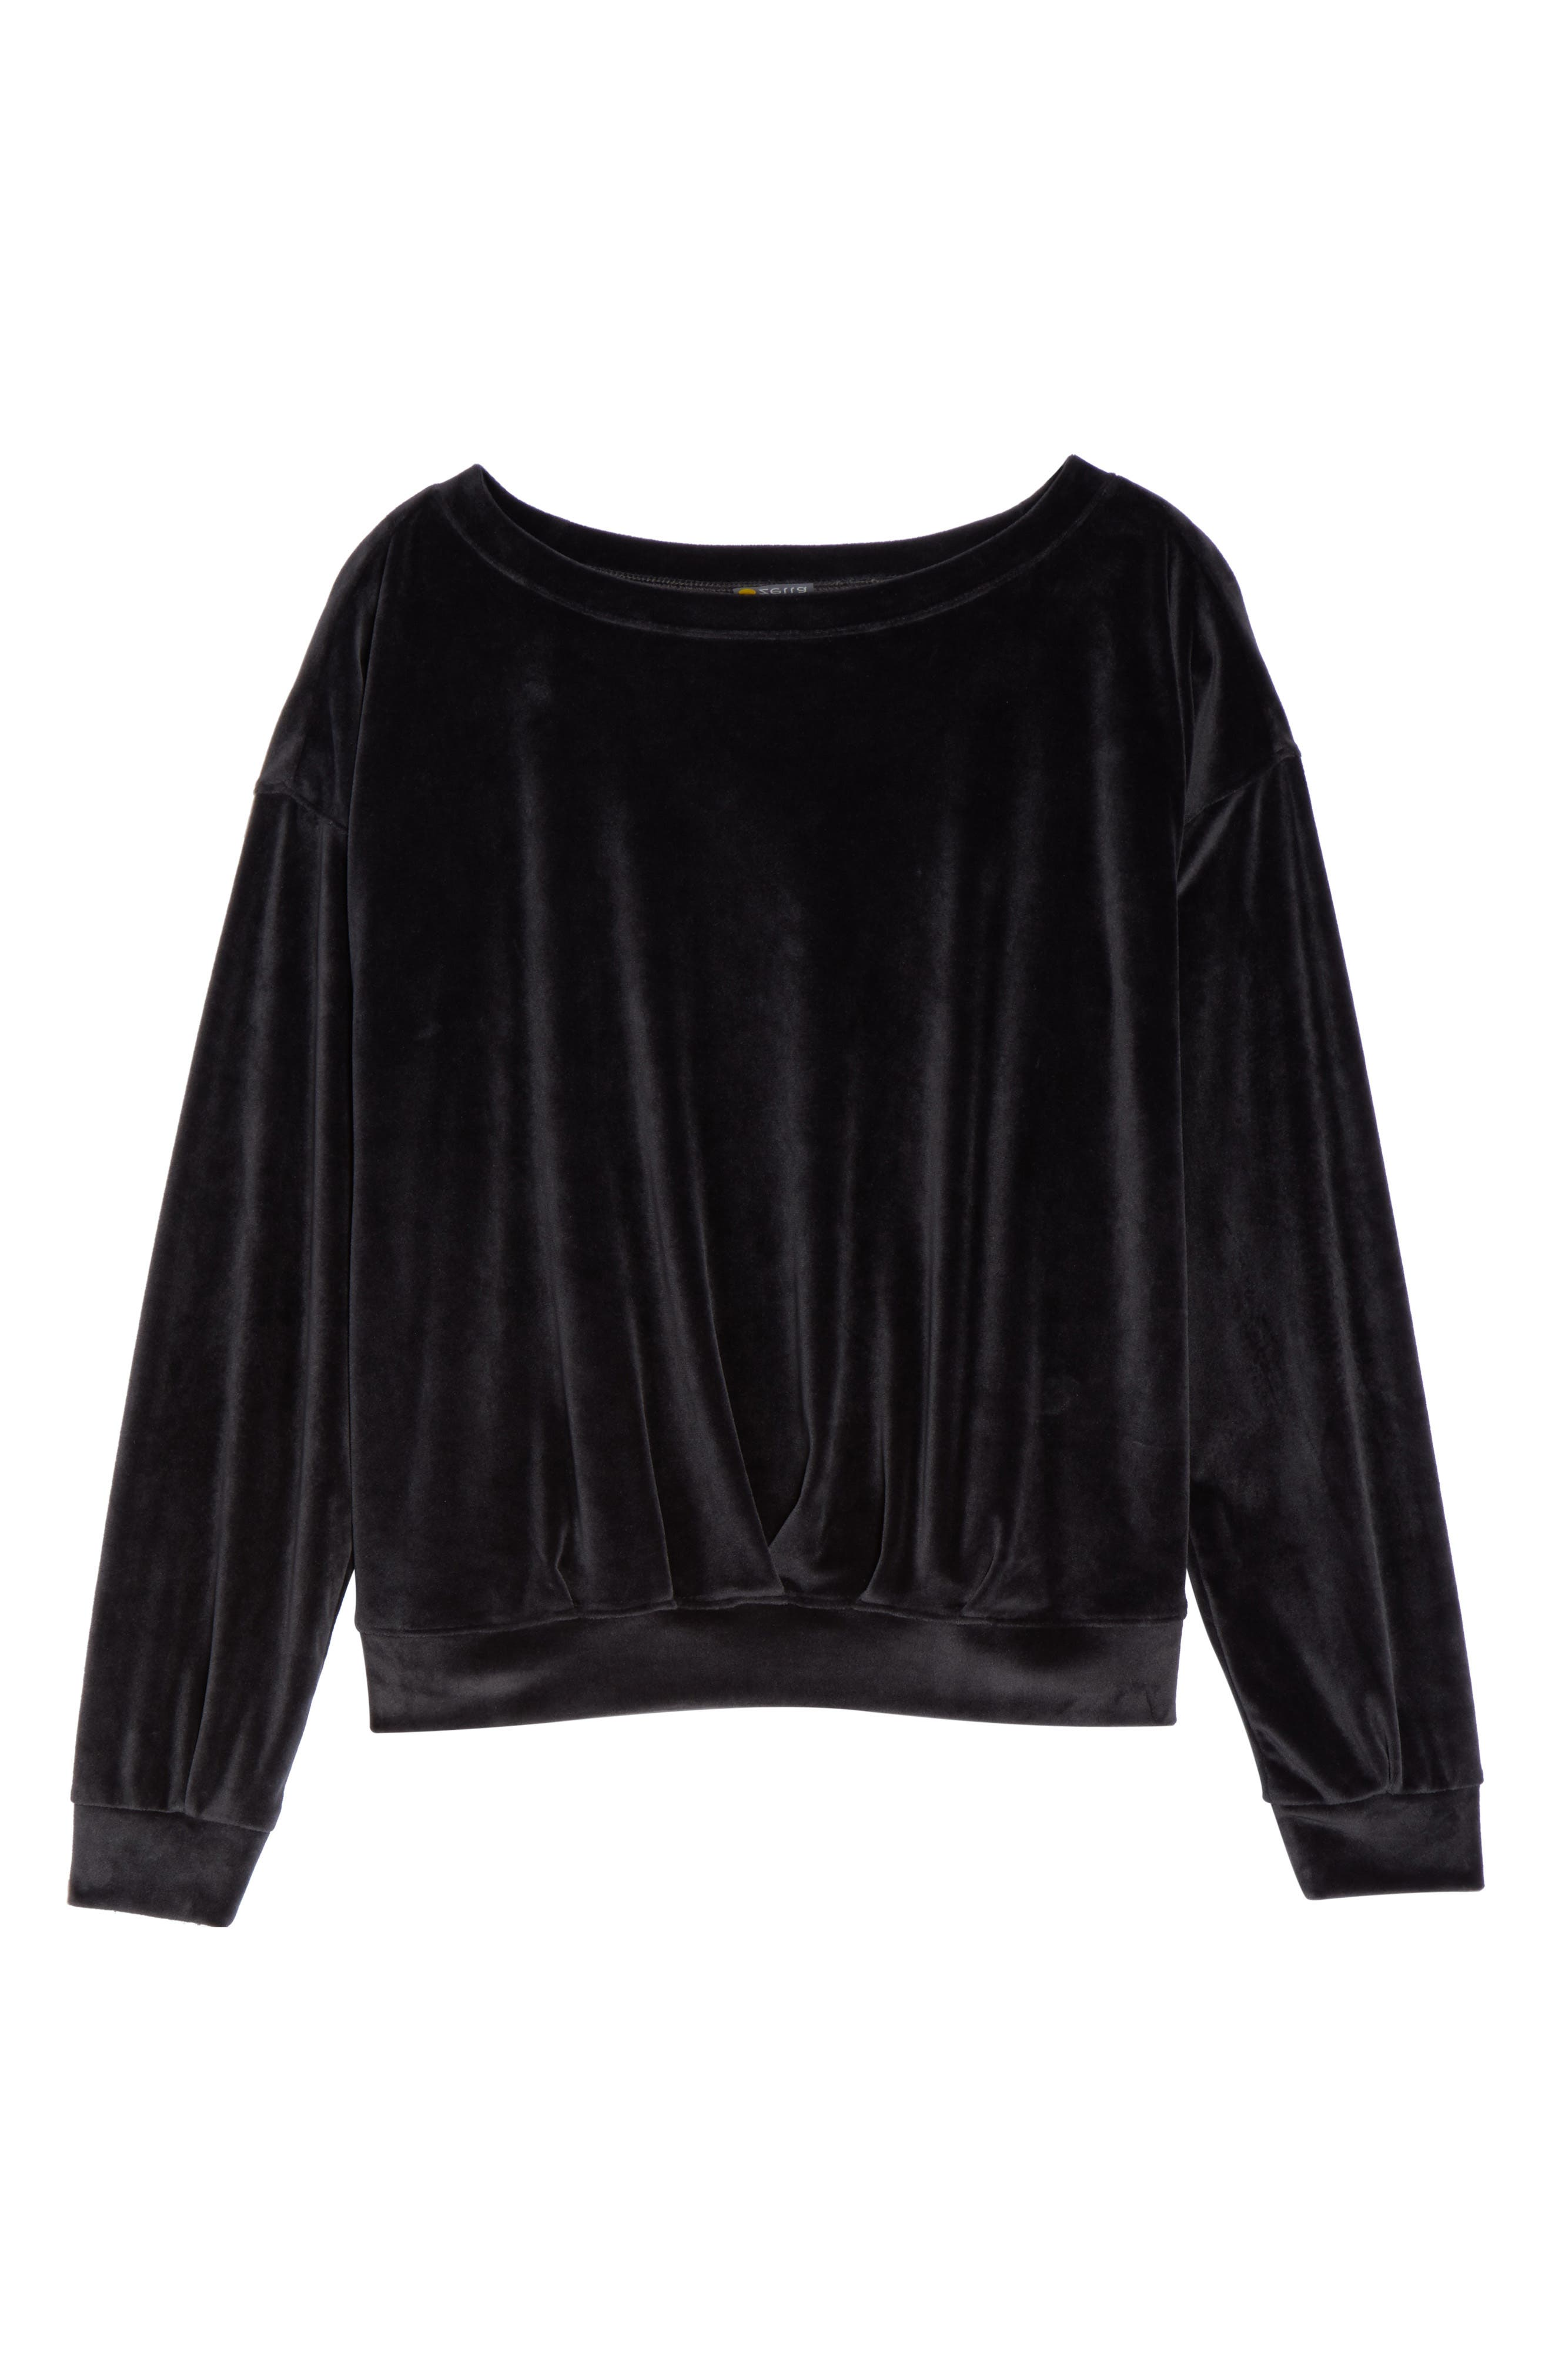 Dani Velour Pullover,                             Alternate thumbnail 7, color,                             001